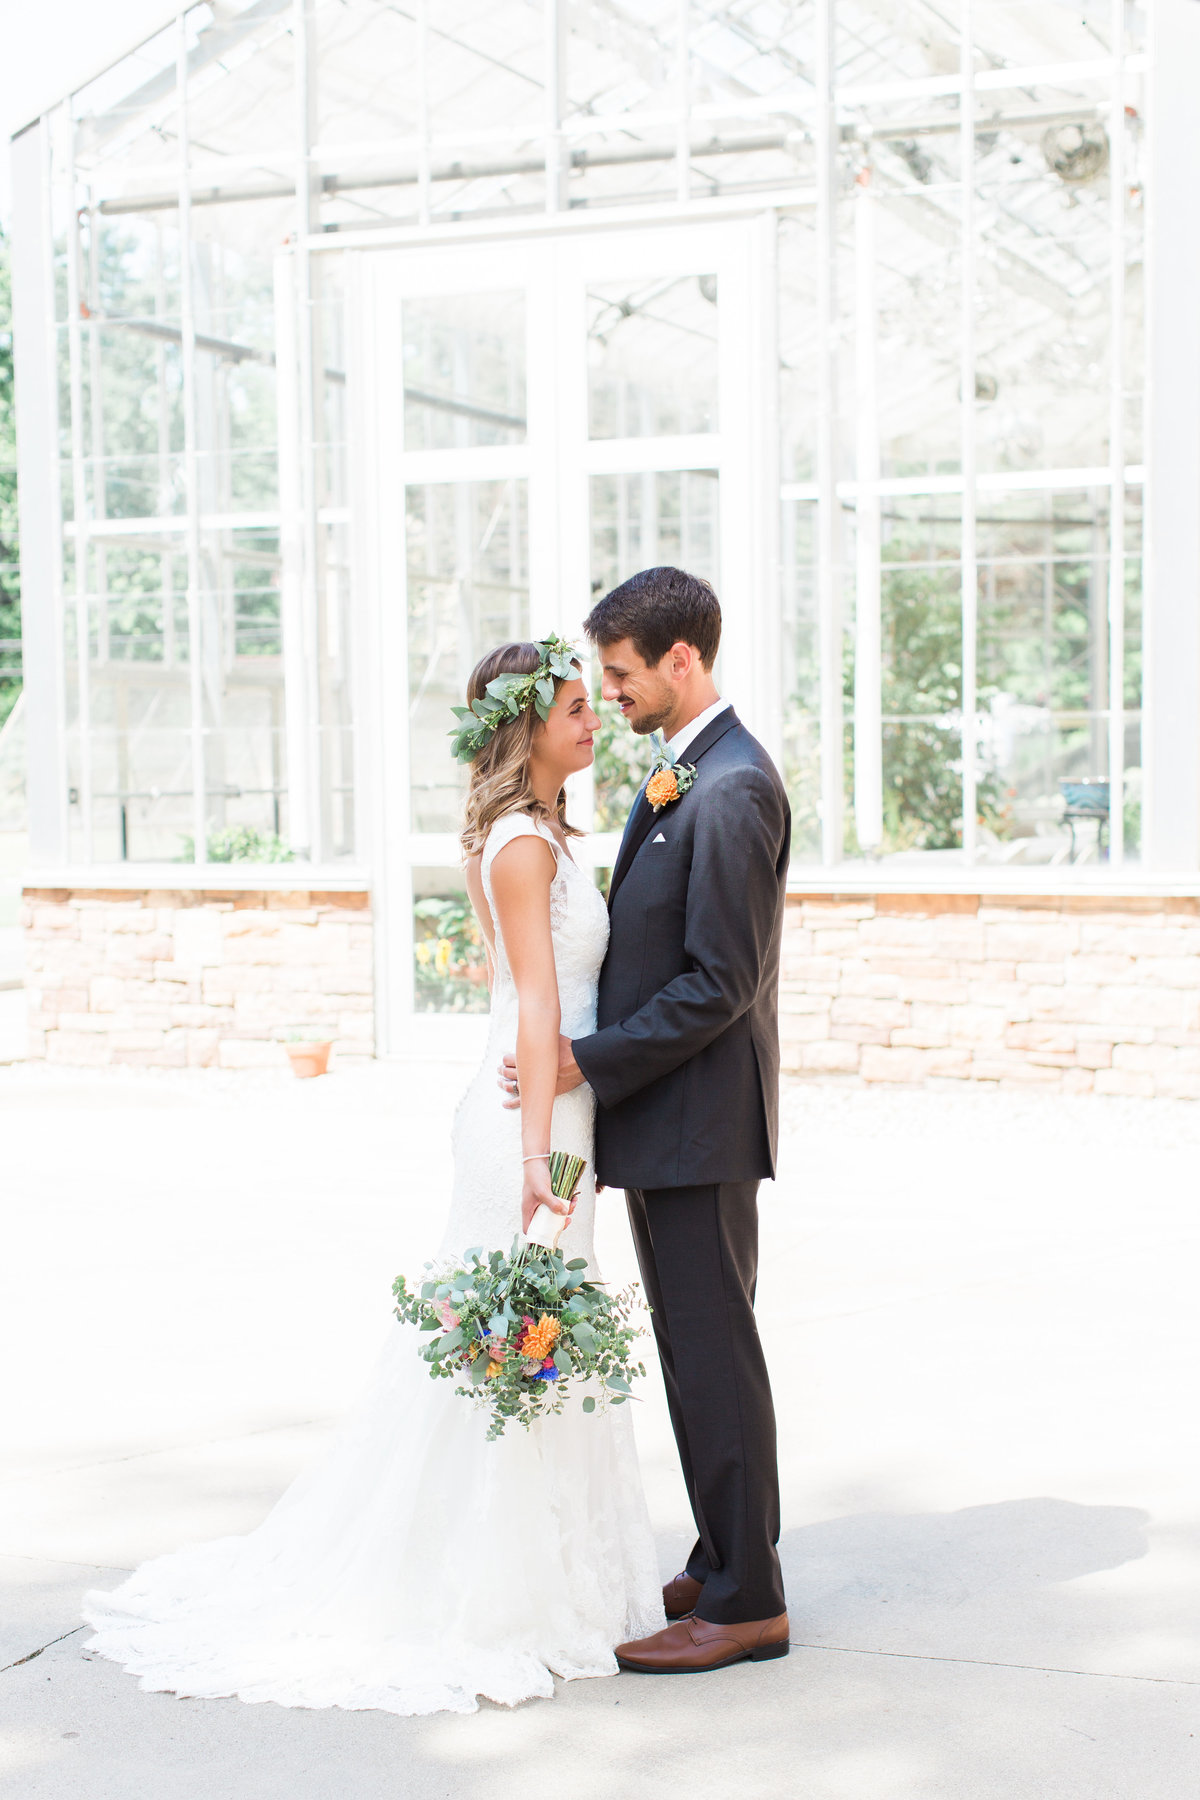 Charley Creek Gardens Wedding Bride and Groom Greenhouse Photo